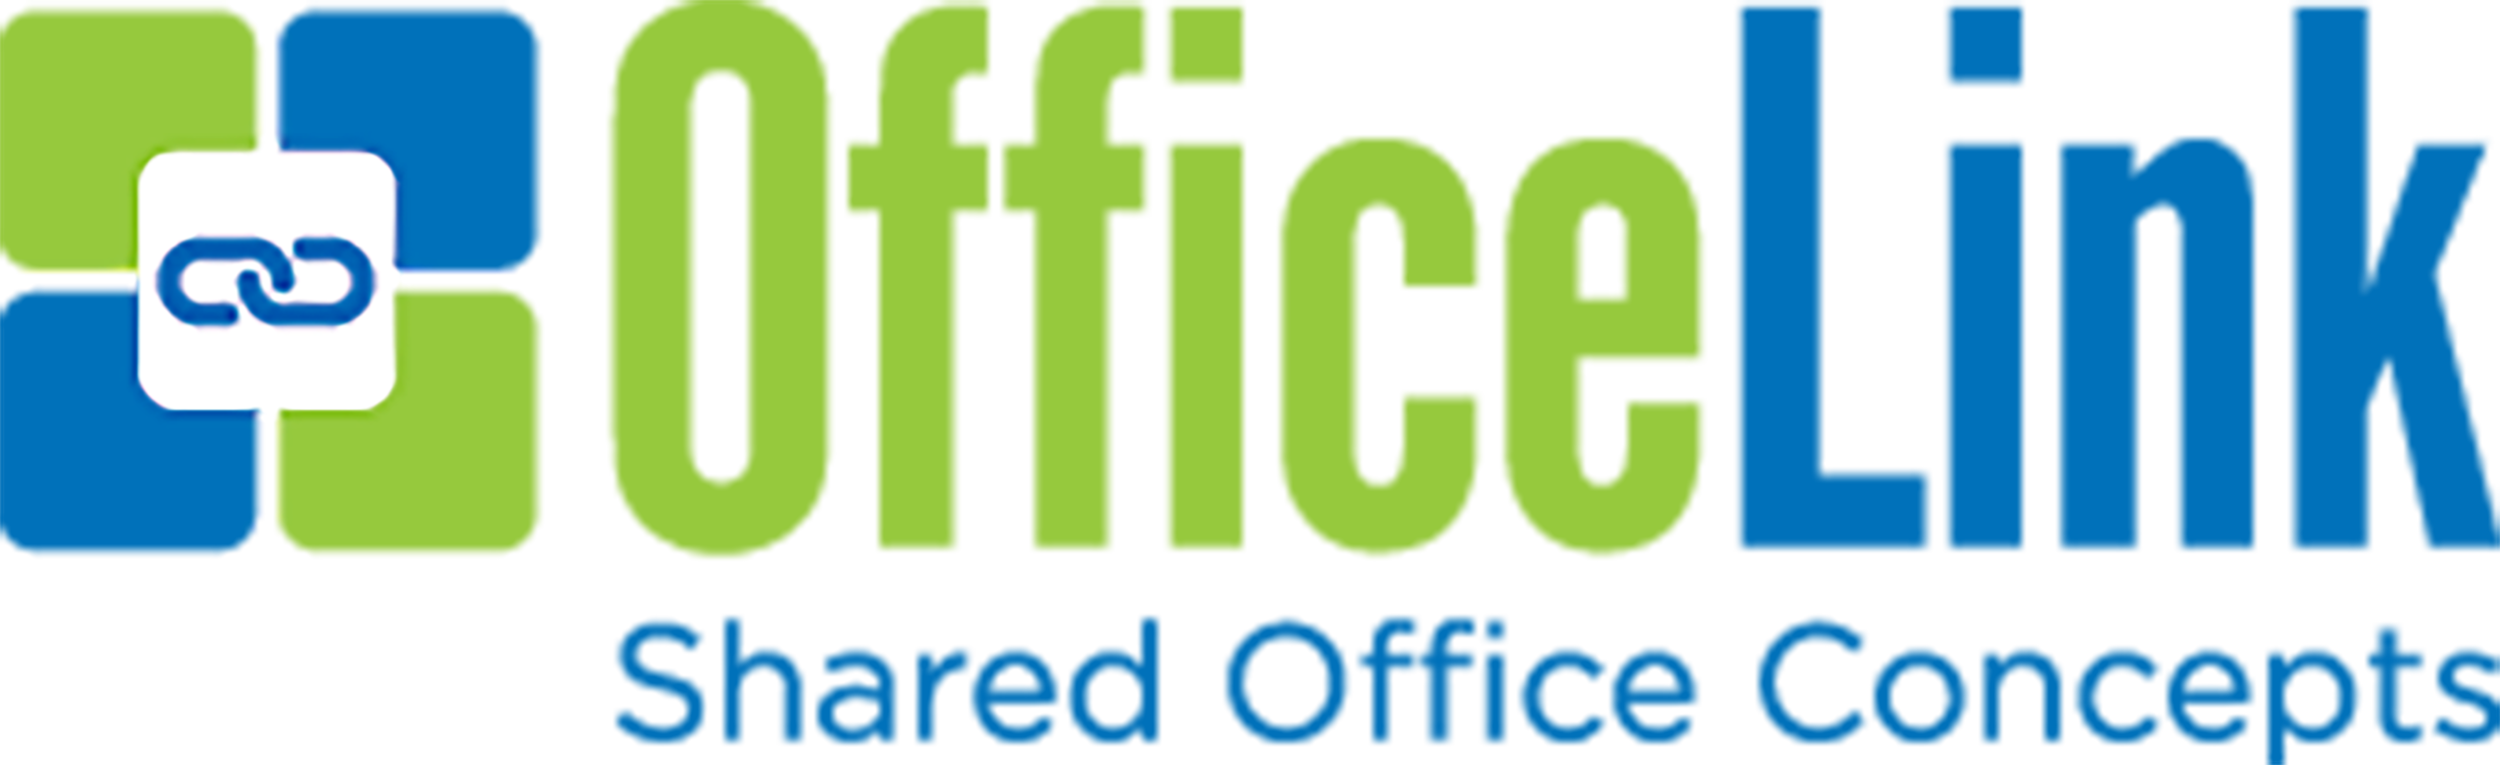 OfficeLink horizontal transparent.png